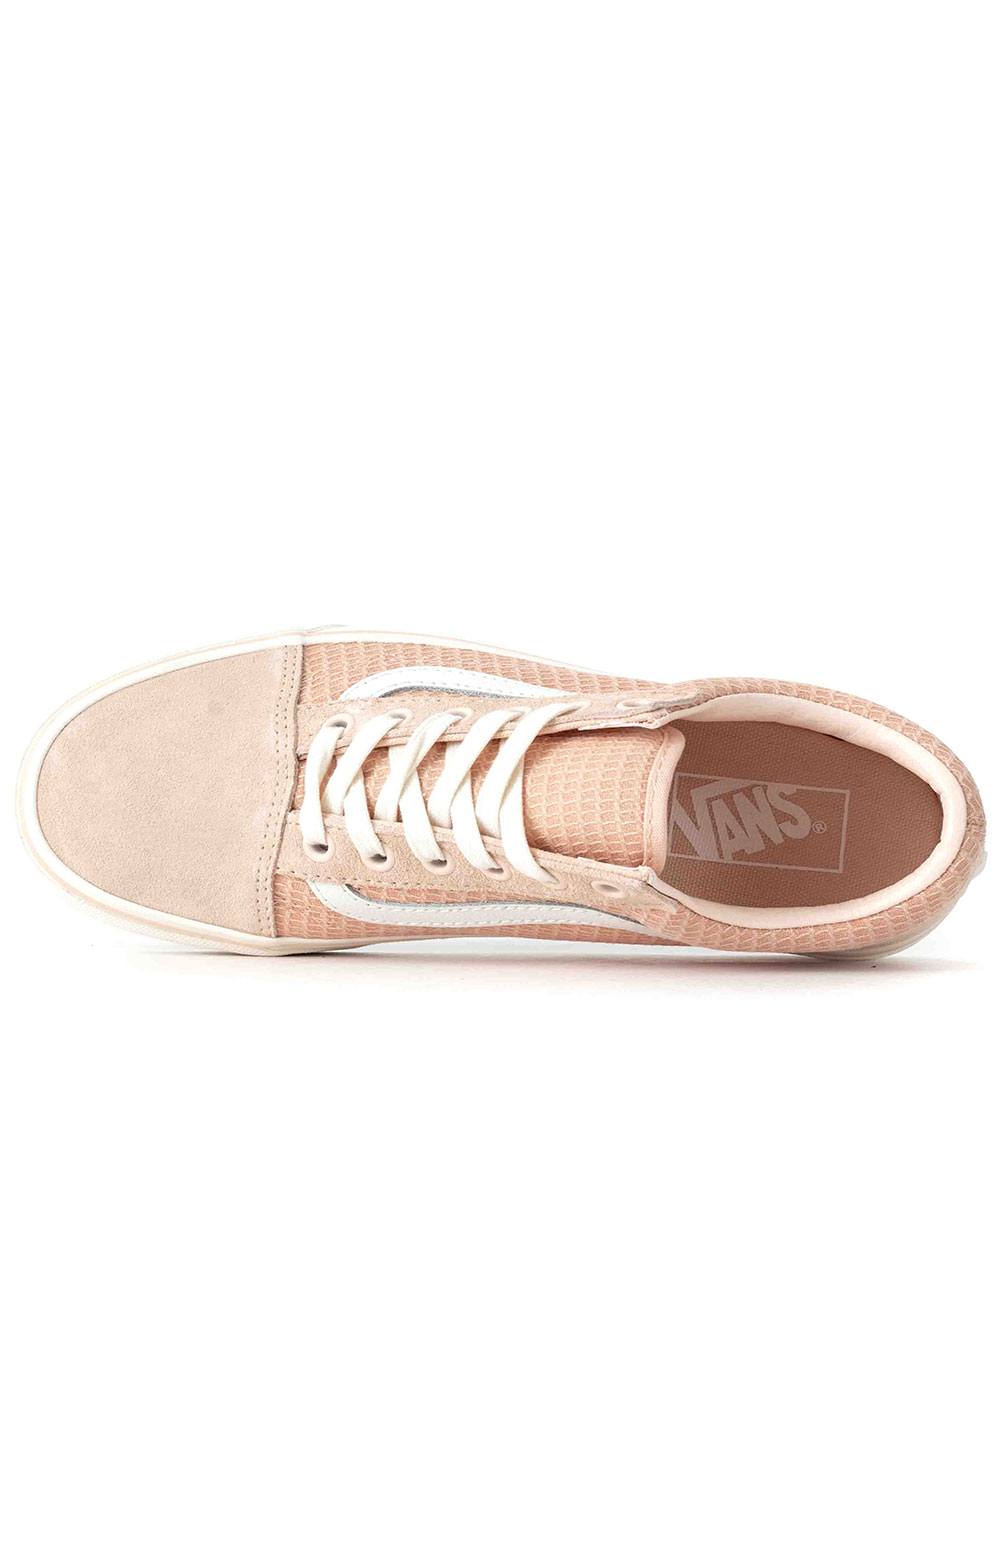 (U3BXF4) Multi Woven Old Skool Shoe - Pink  2